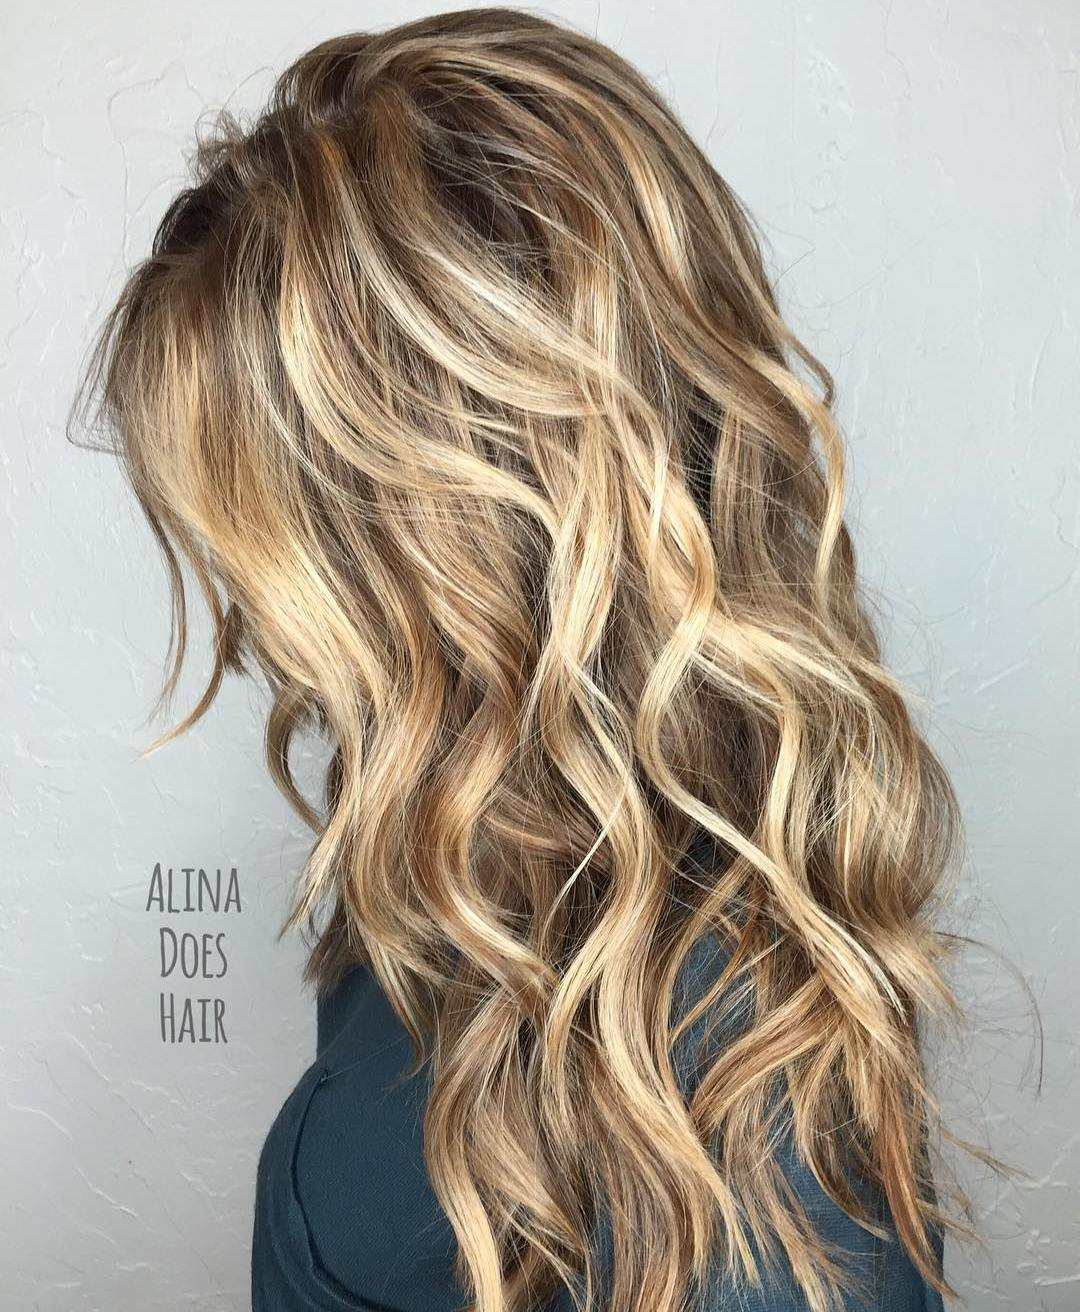 1-long-layered-sandy-blonde-hair 1-long-layered-sandy-blonde-hair